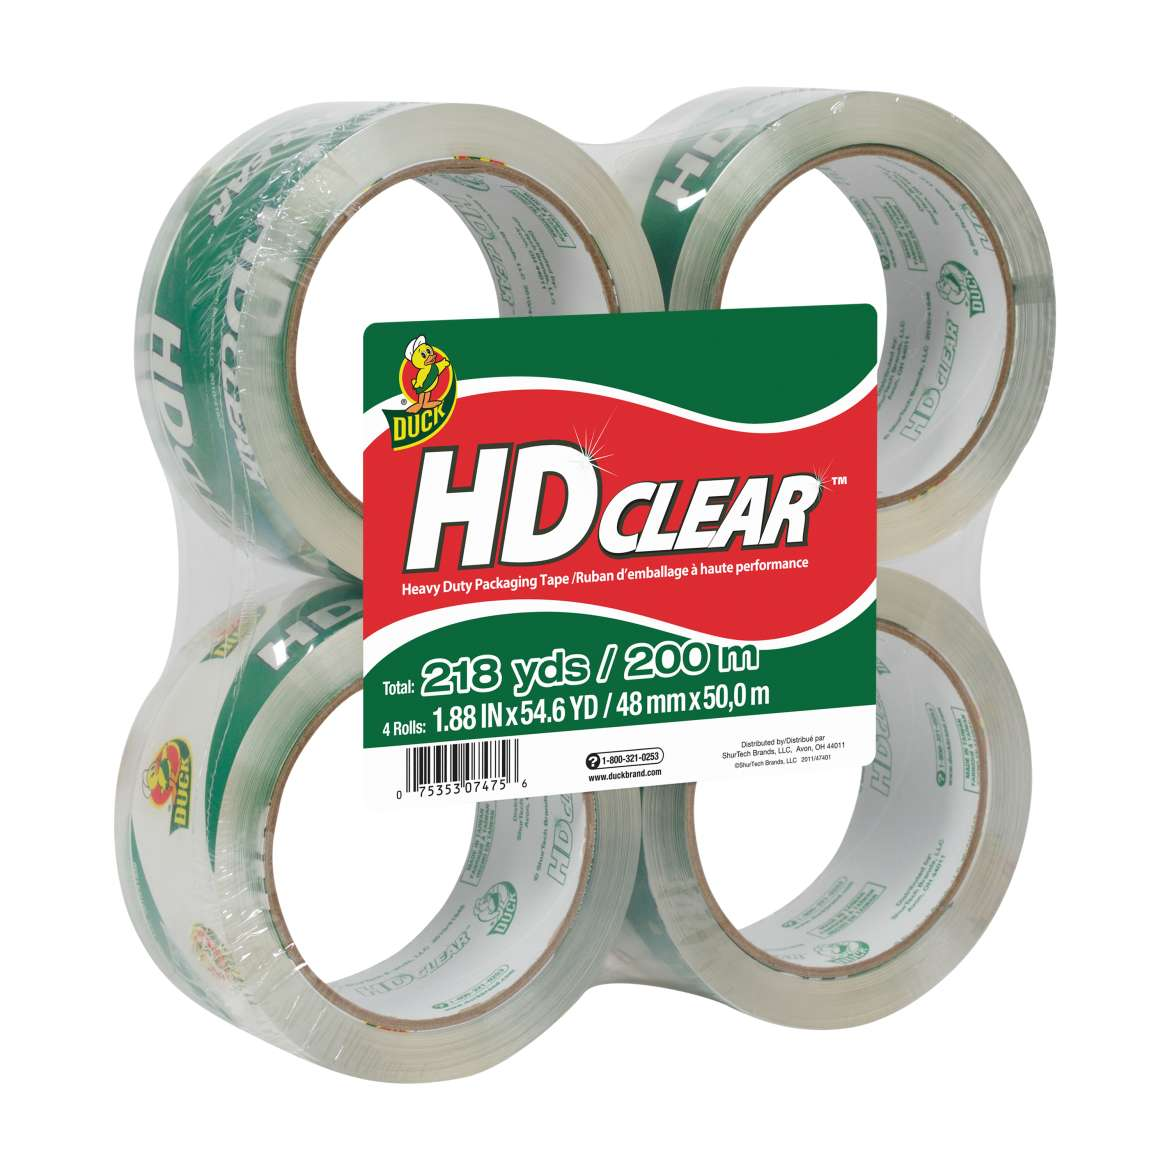 Duck HD Clear Packaging Tape, 1.88 in. x 54.6 yd., Clear, 4-Count